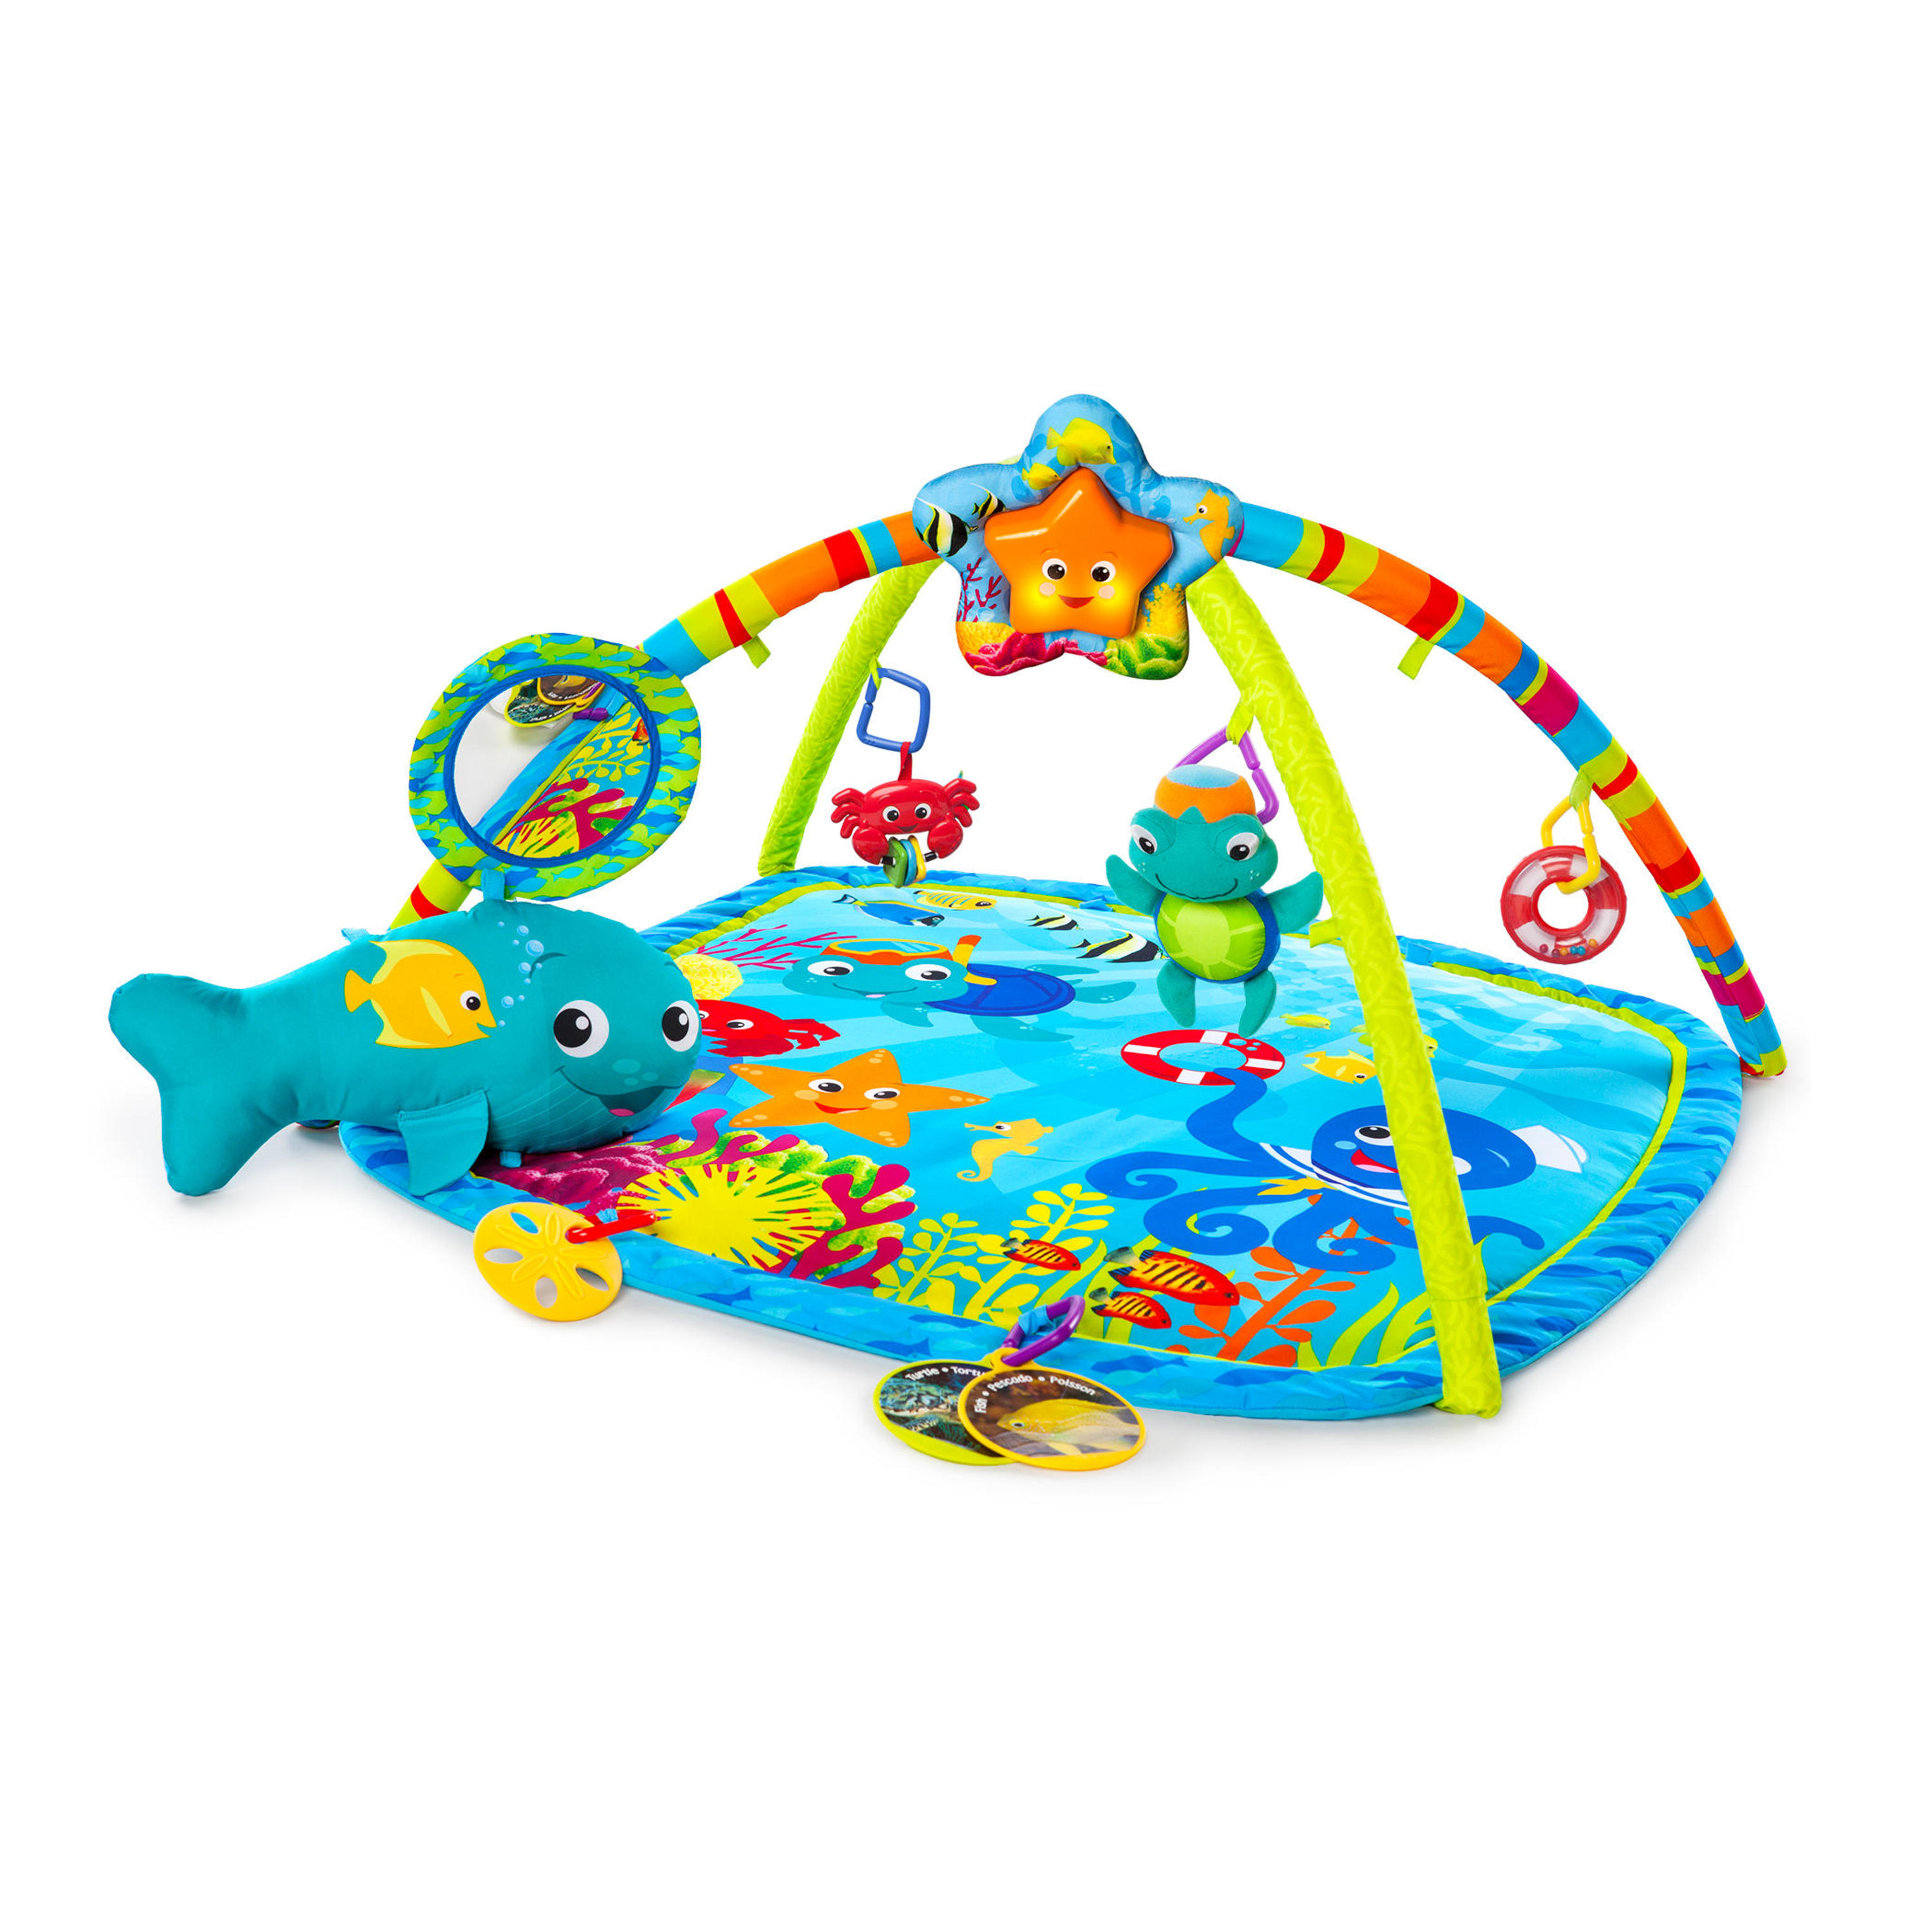 Baby Einstein Activity Gym and Play Mat - Nautical Friends